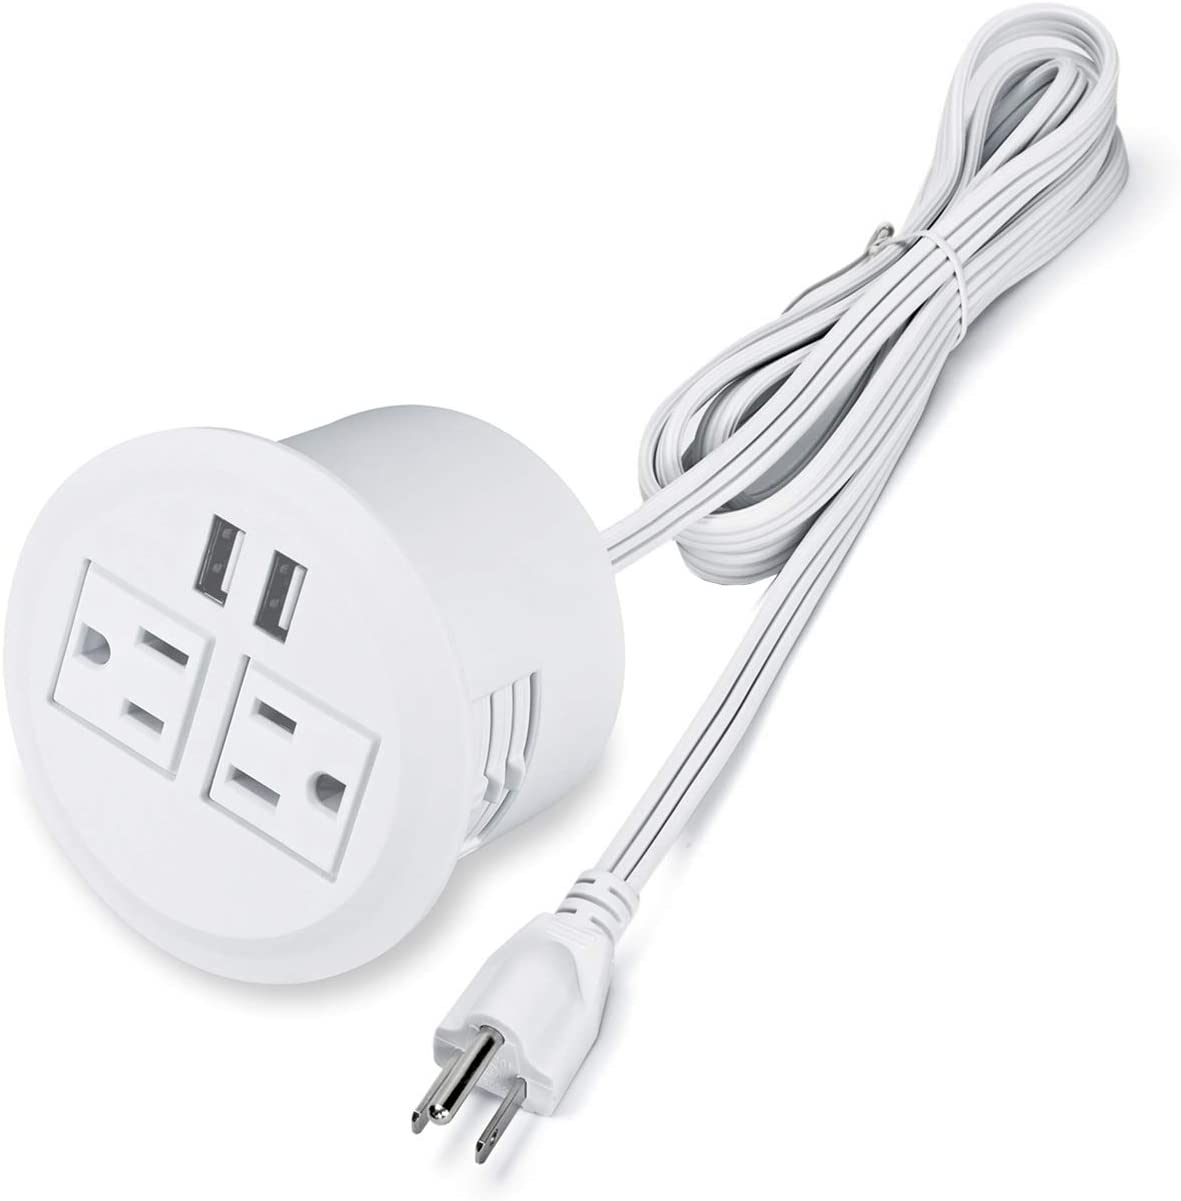 Desktop Power Grommet Power Outlet Socket Desk Outlet Power Strip 2 Outlet with 2 USB Ports with 10 FT Power Cord(White)